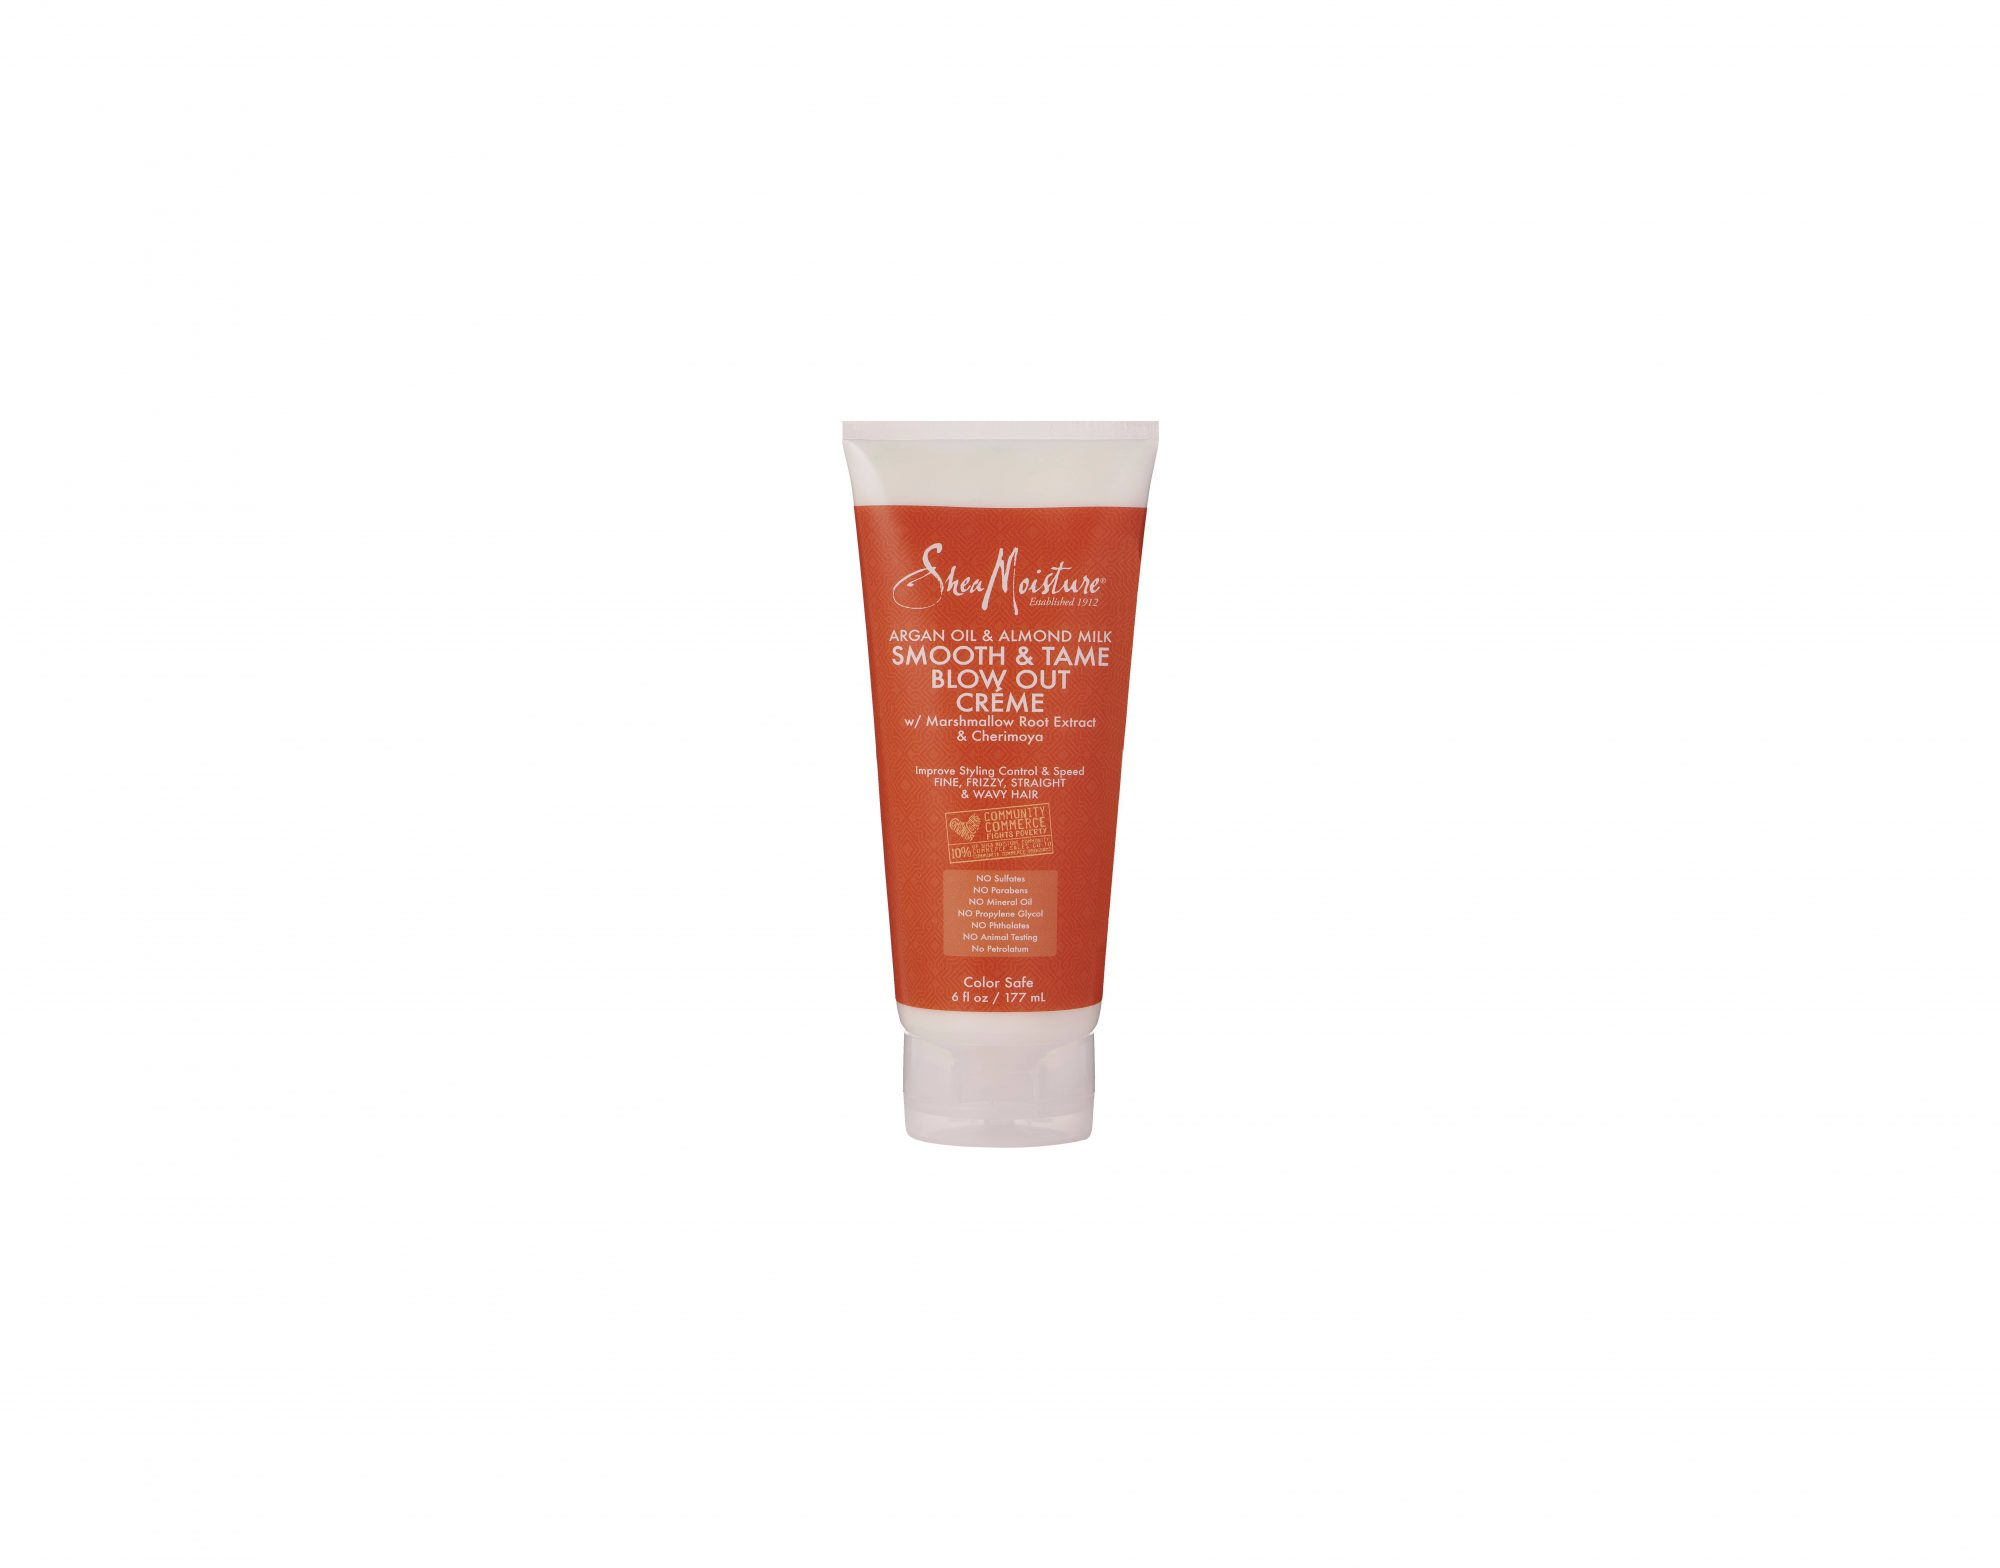 shea-moisture-blow-out-cream